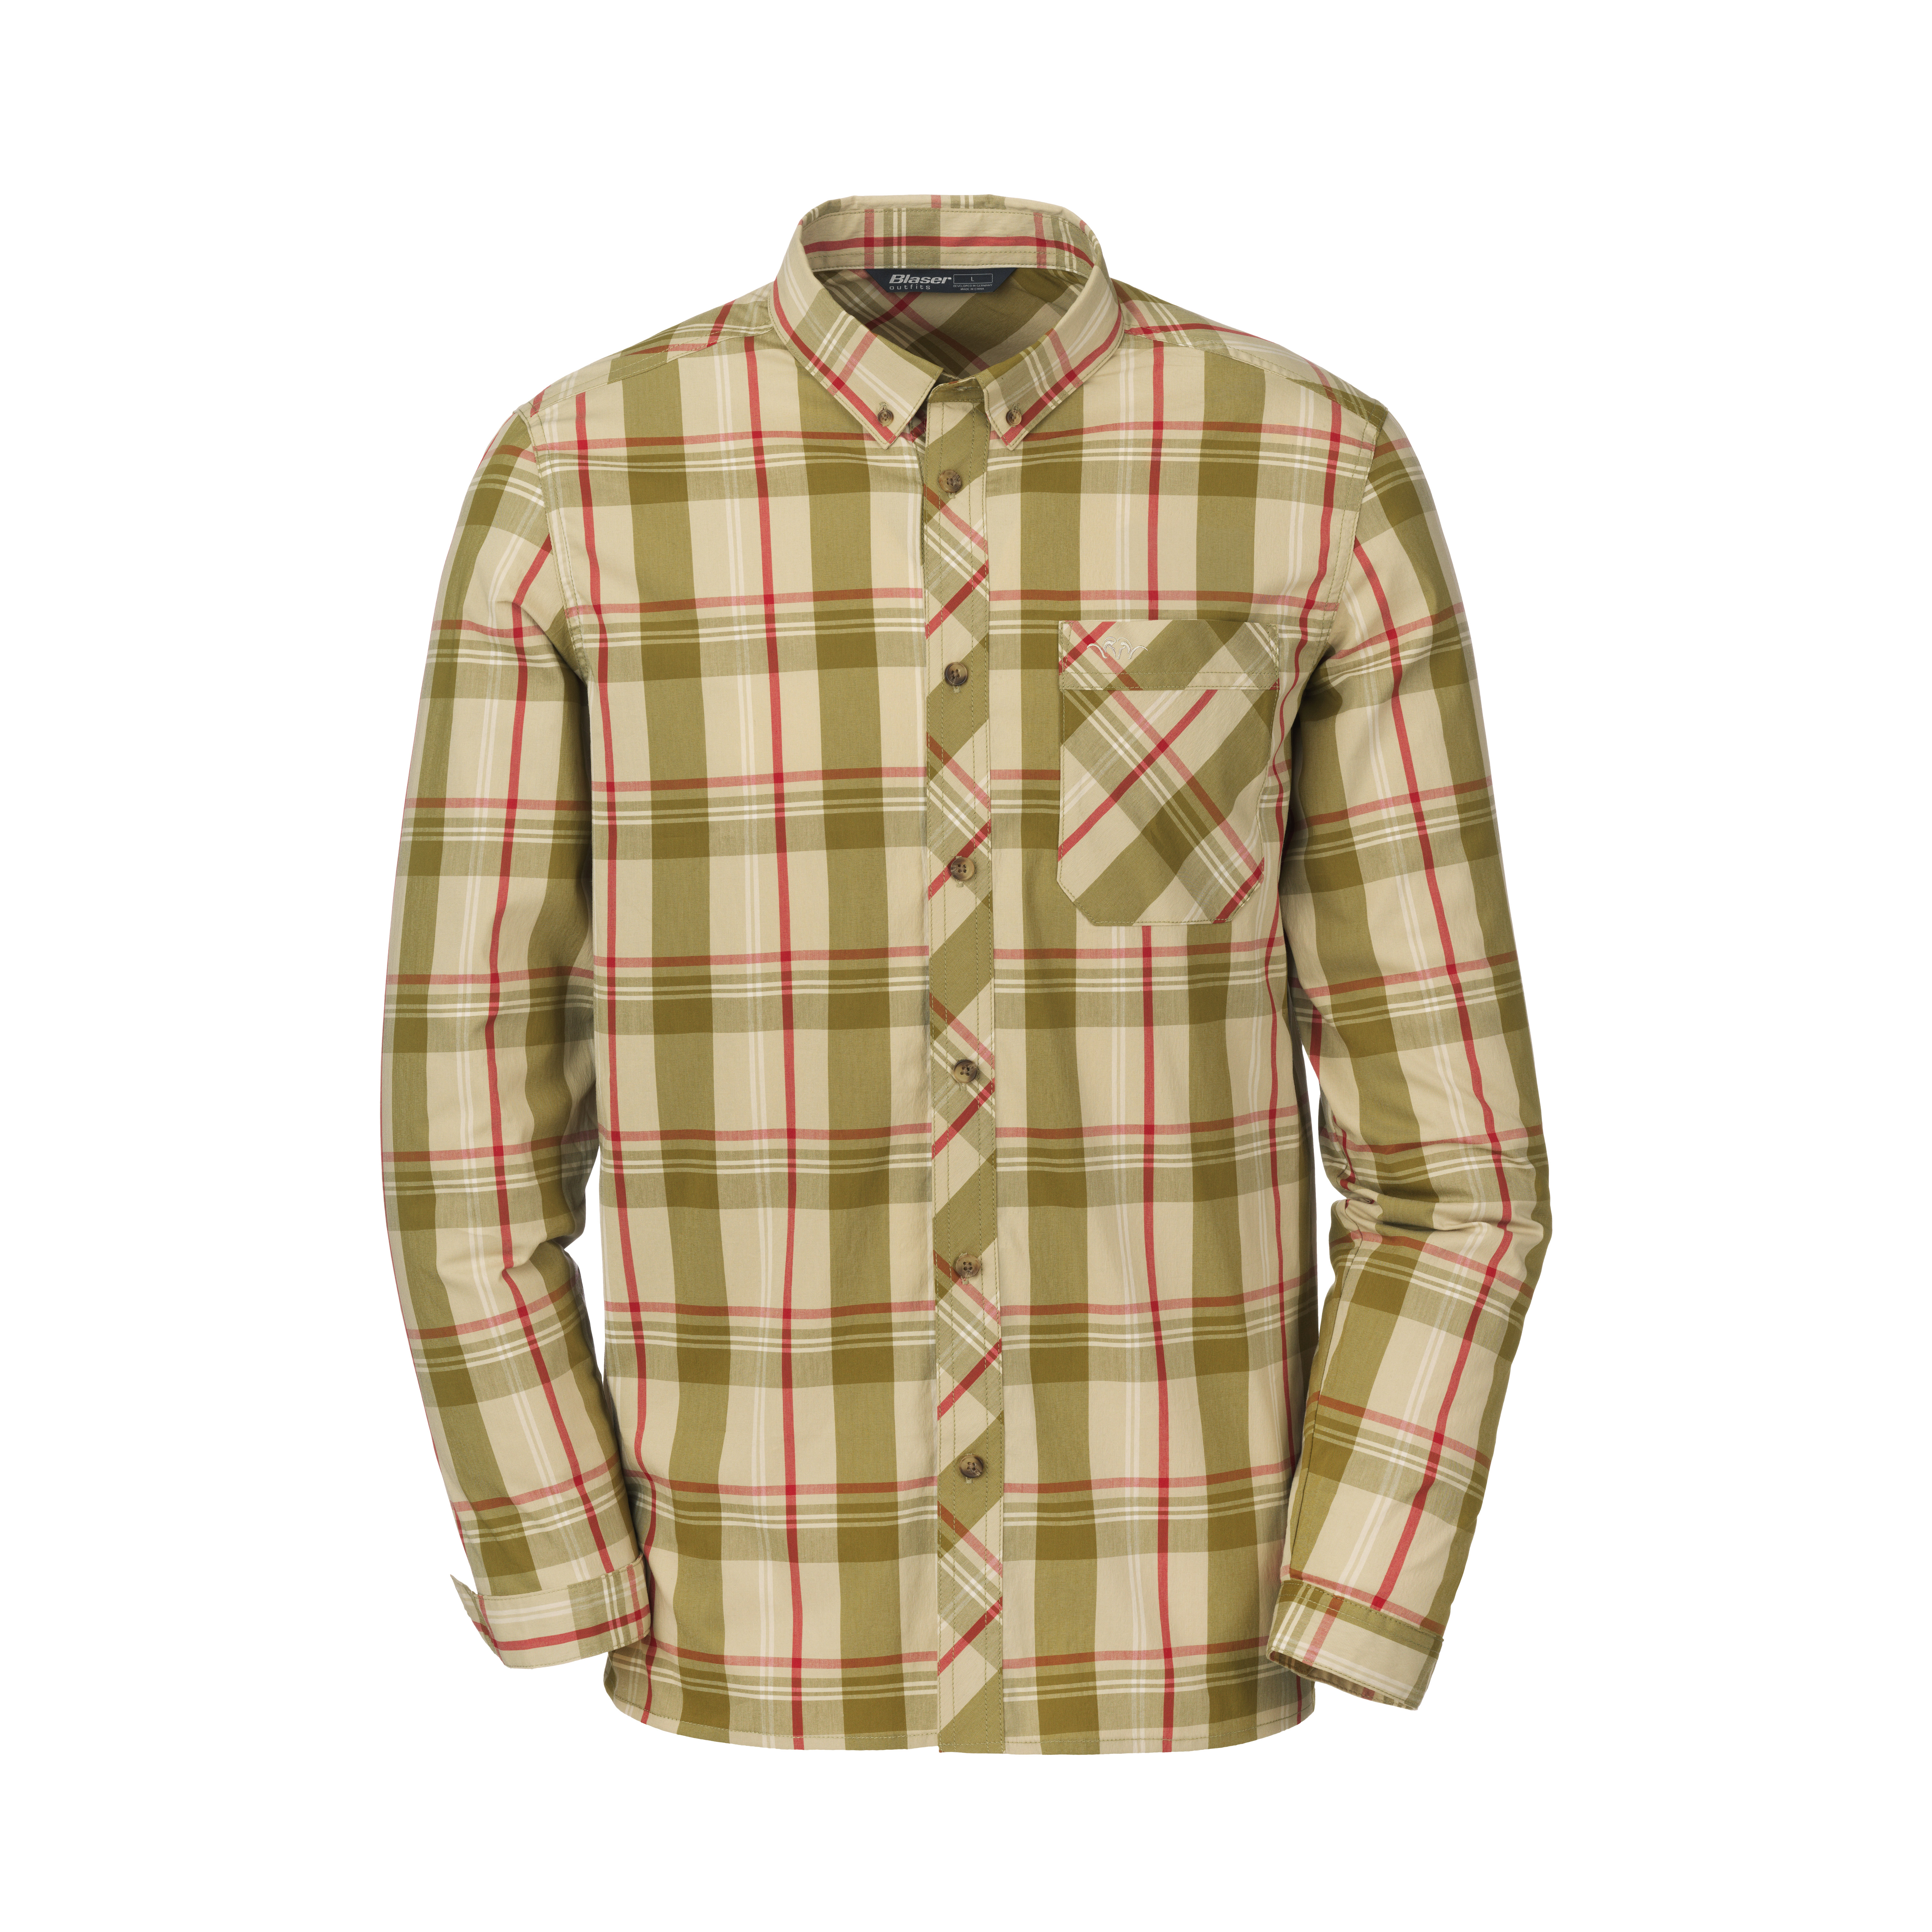 Harald - Stretch Shirt - Olive / Beige Chequered